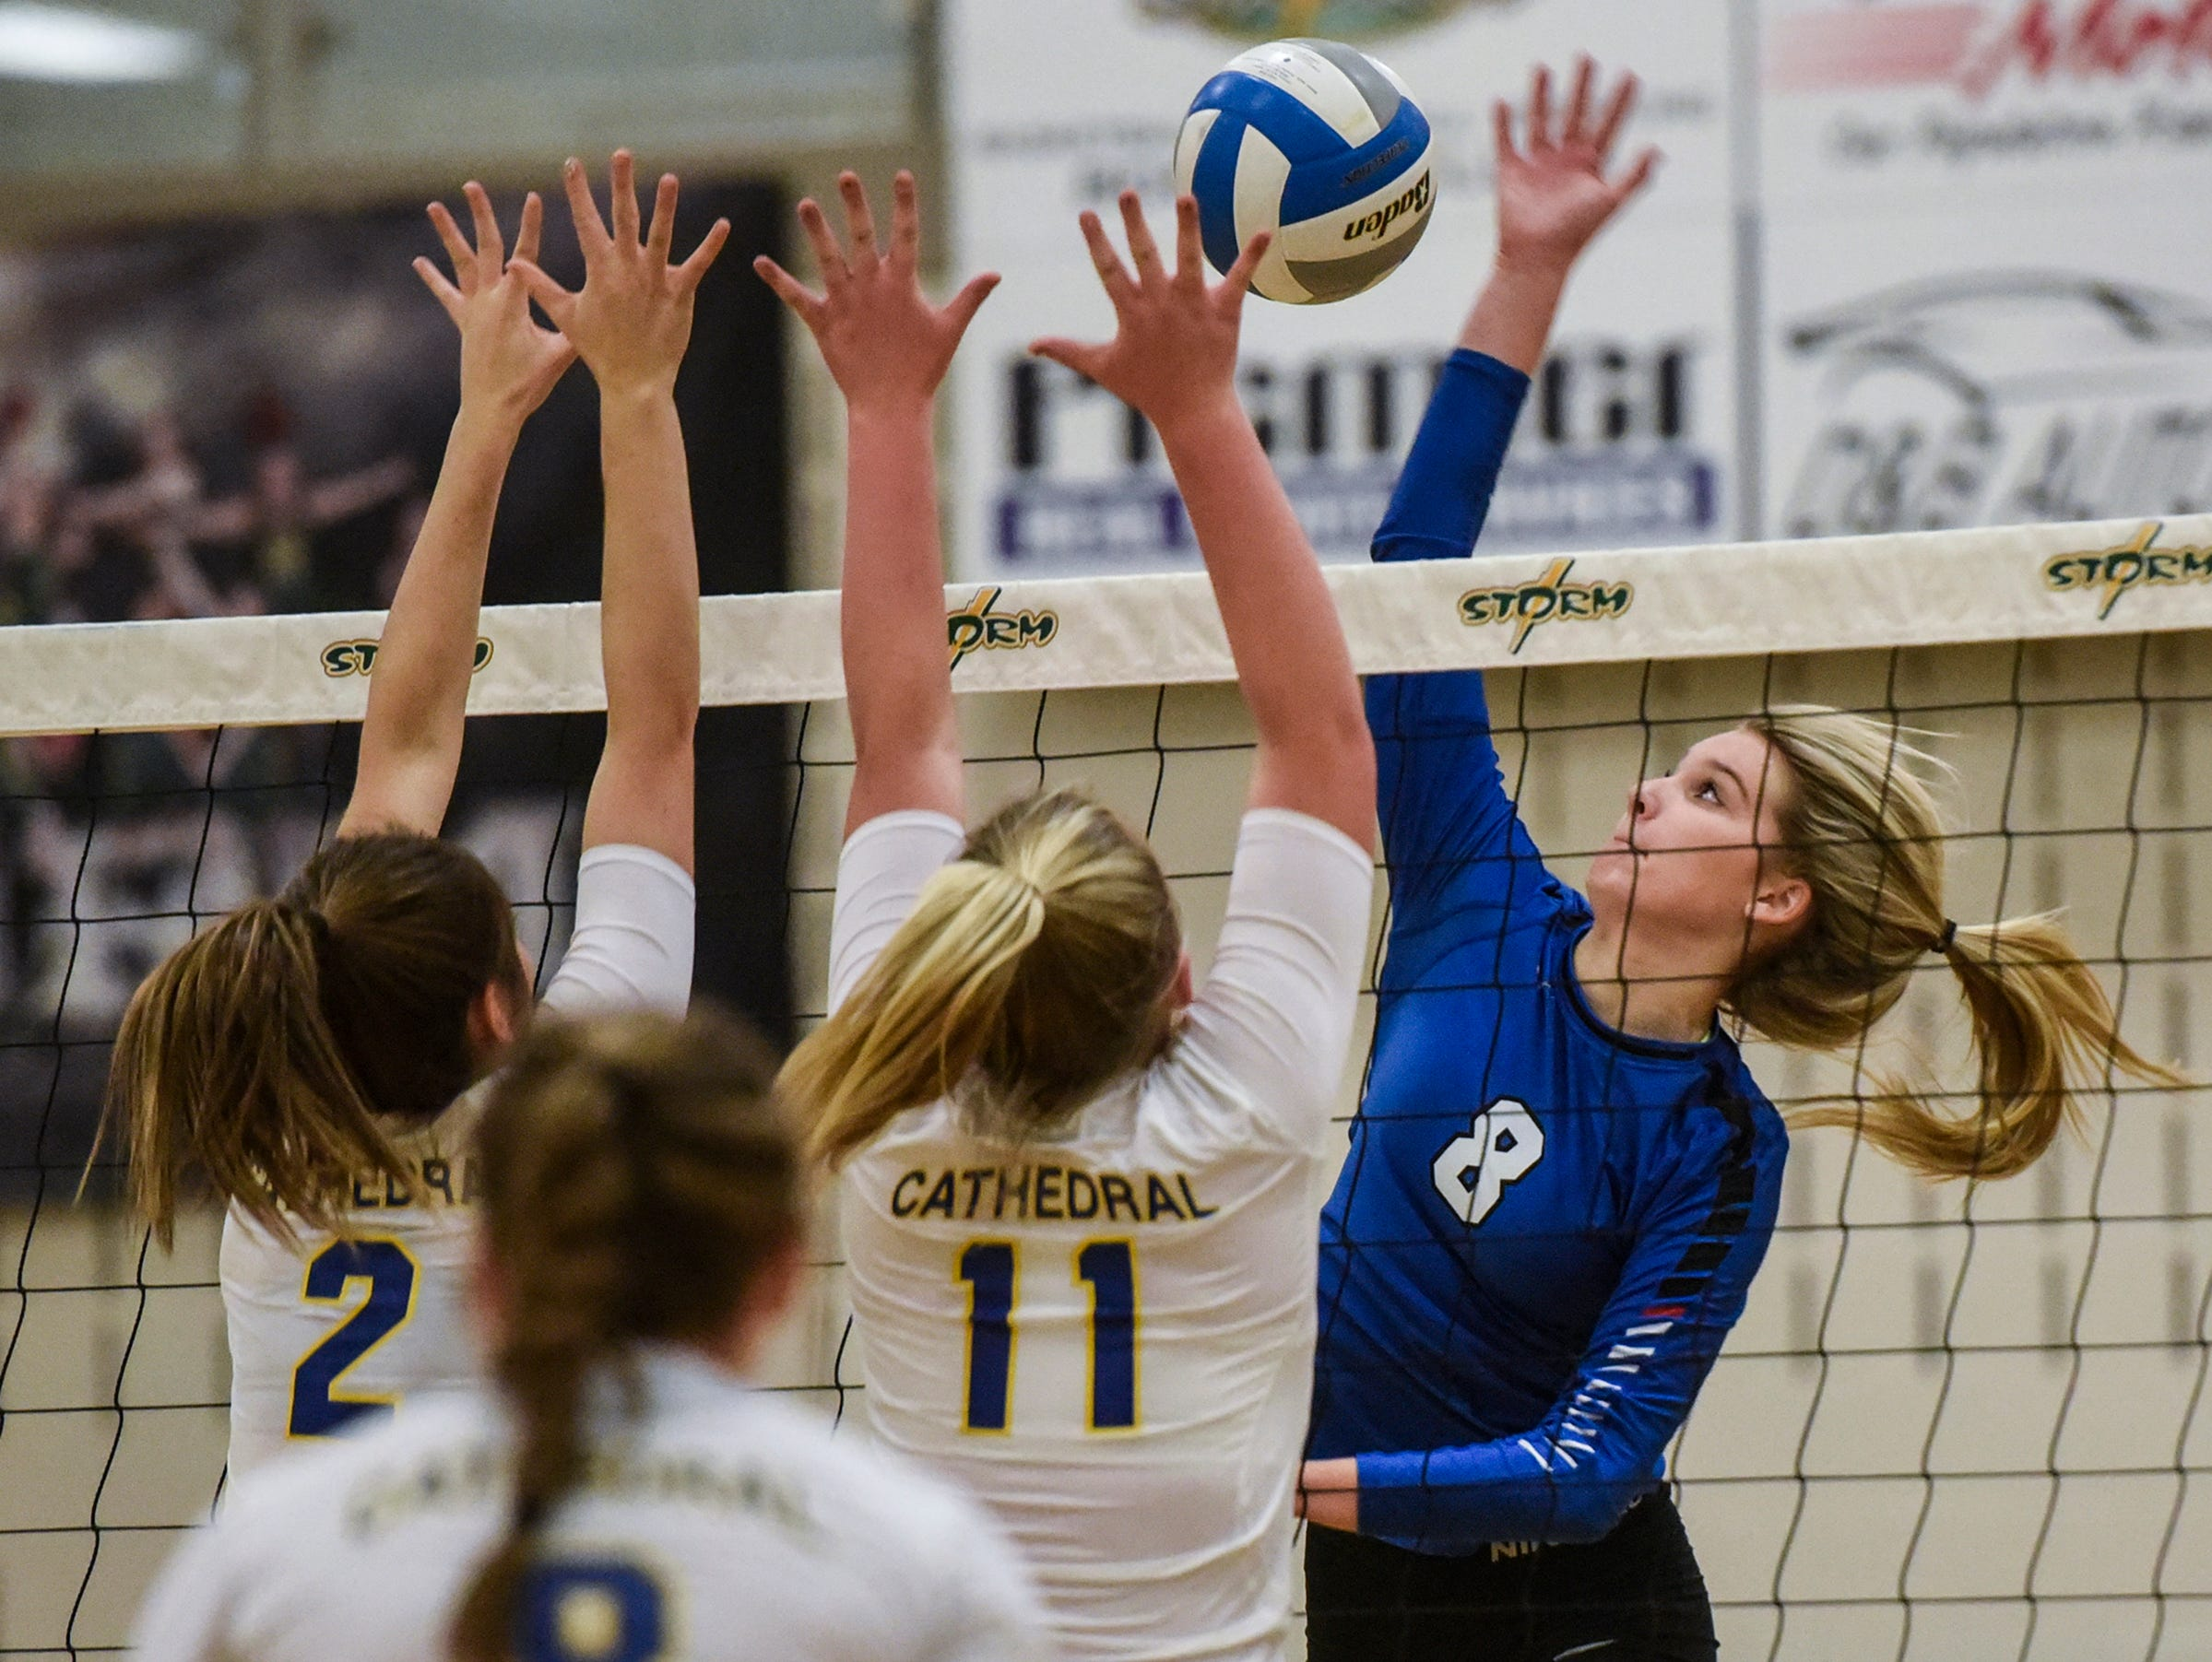 Foley's Jayden Hermanson leaps for a spike during the Section 6-2A volleyball semifinals Thursday, Nov. 1, at Sauk Rapids-Rice High School.